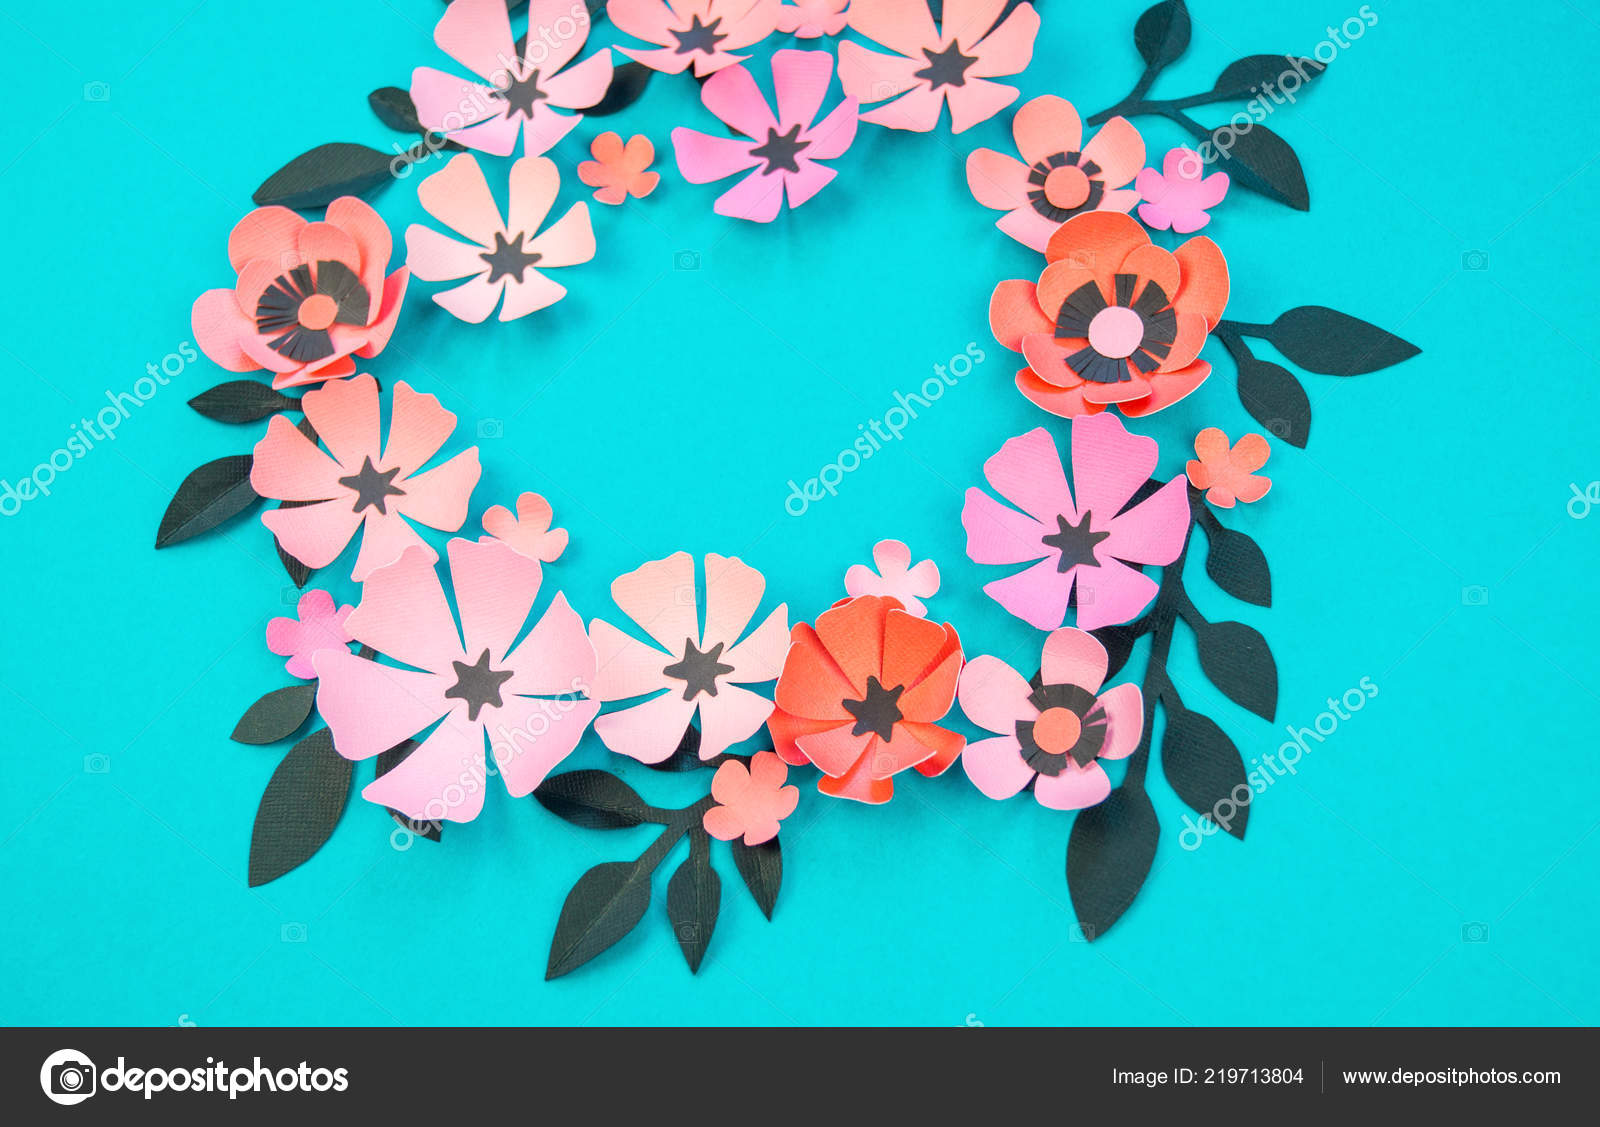 Flower Leaves Made Paper Turquoise Background Handwork Favorite